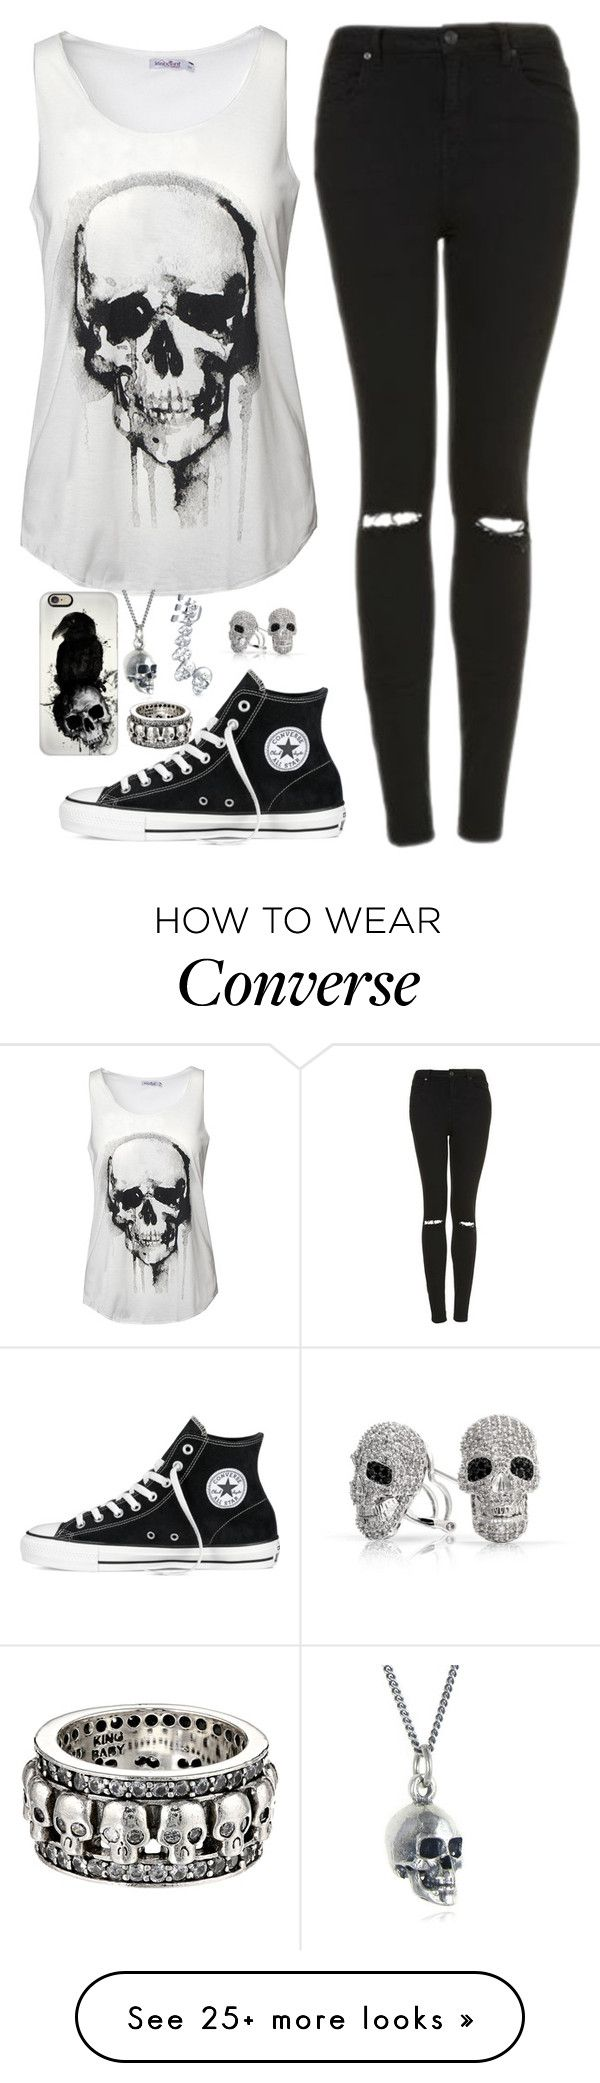 """Skull outfit"" by genesis6182 on Polyvore featuring Topshop, Converse, Bling Jewelry, Black Pearl, Casetify and King Baby Studio"